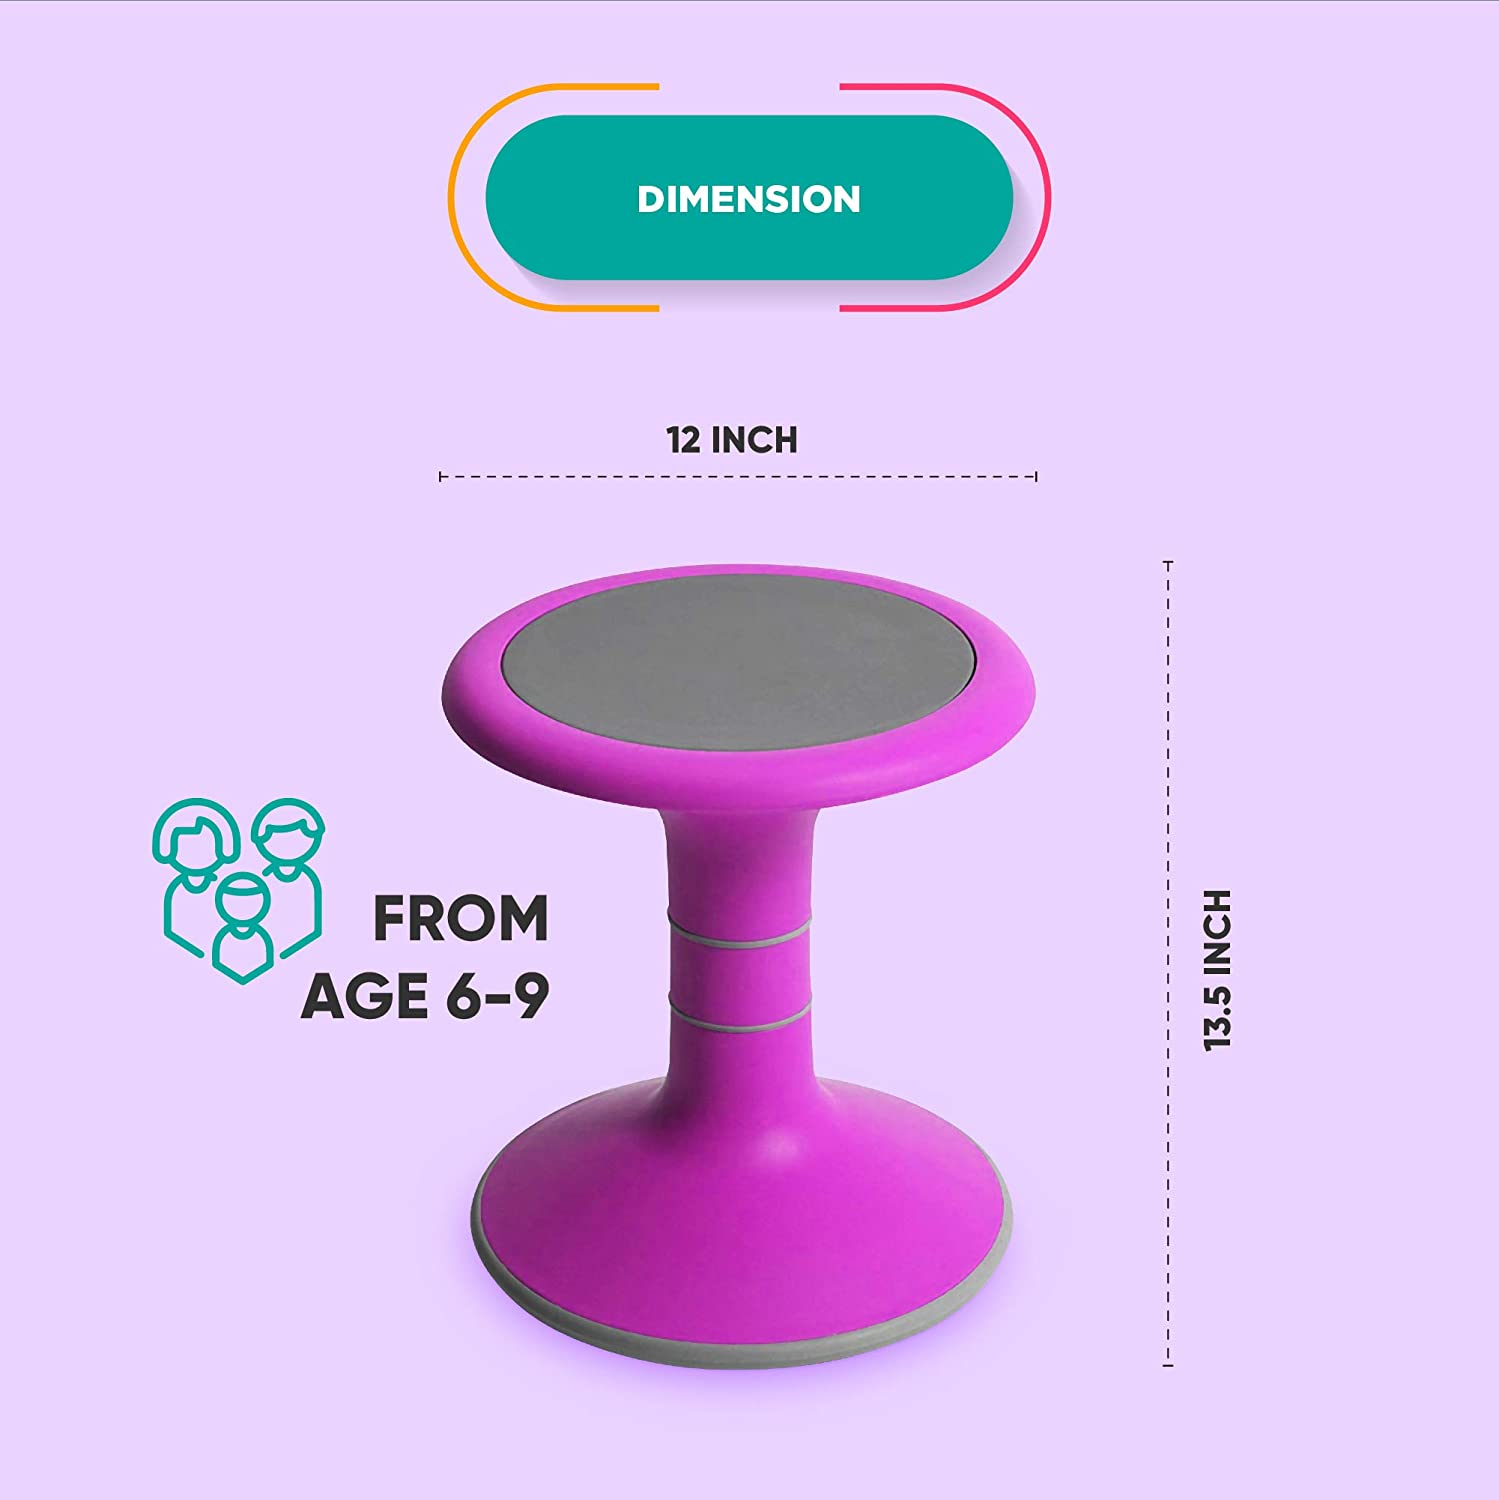 Ergonomic Wobble Stool To Encourage Right Posture Active Kid ADHD Fidget Wobbly Seat Wobble Chair For Kids Pink Balance /& Strengthen Core Sensory School Classroom /& Home Chairs